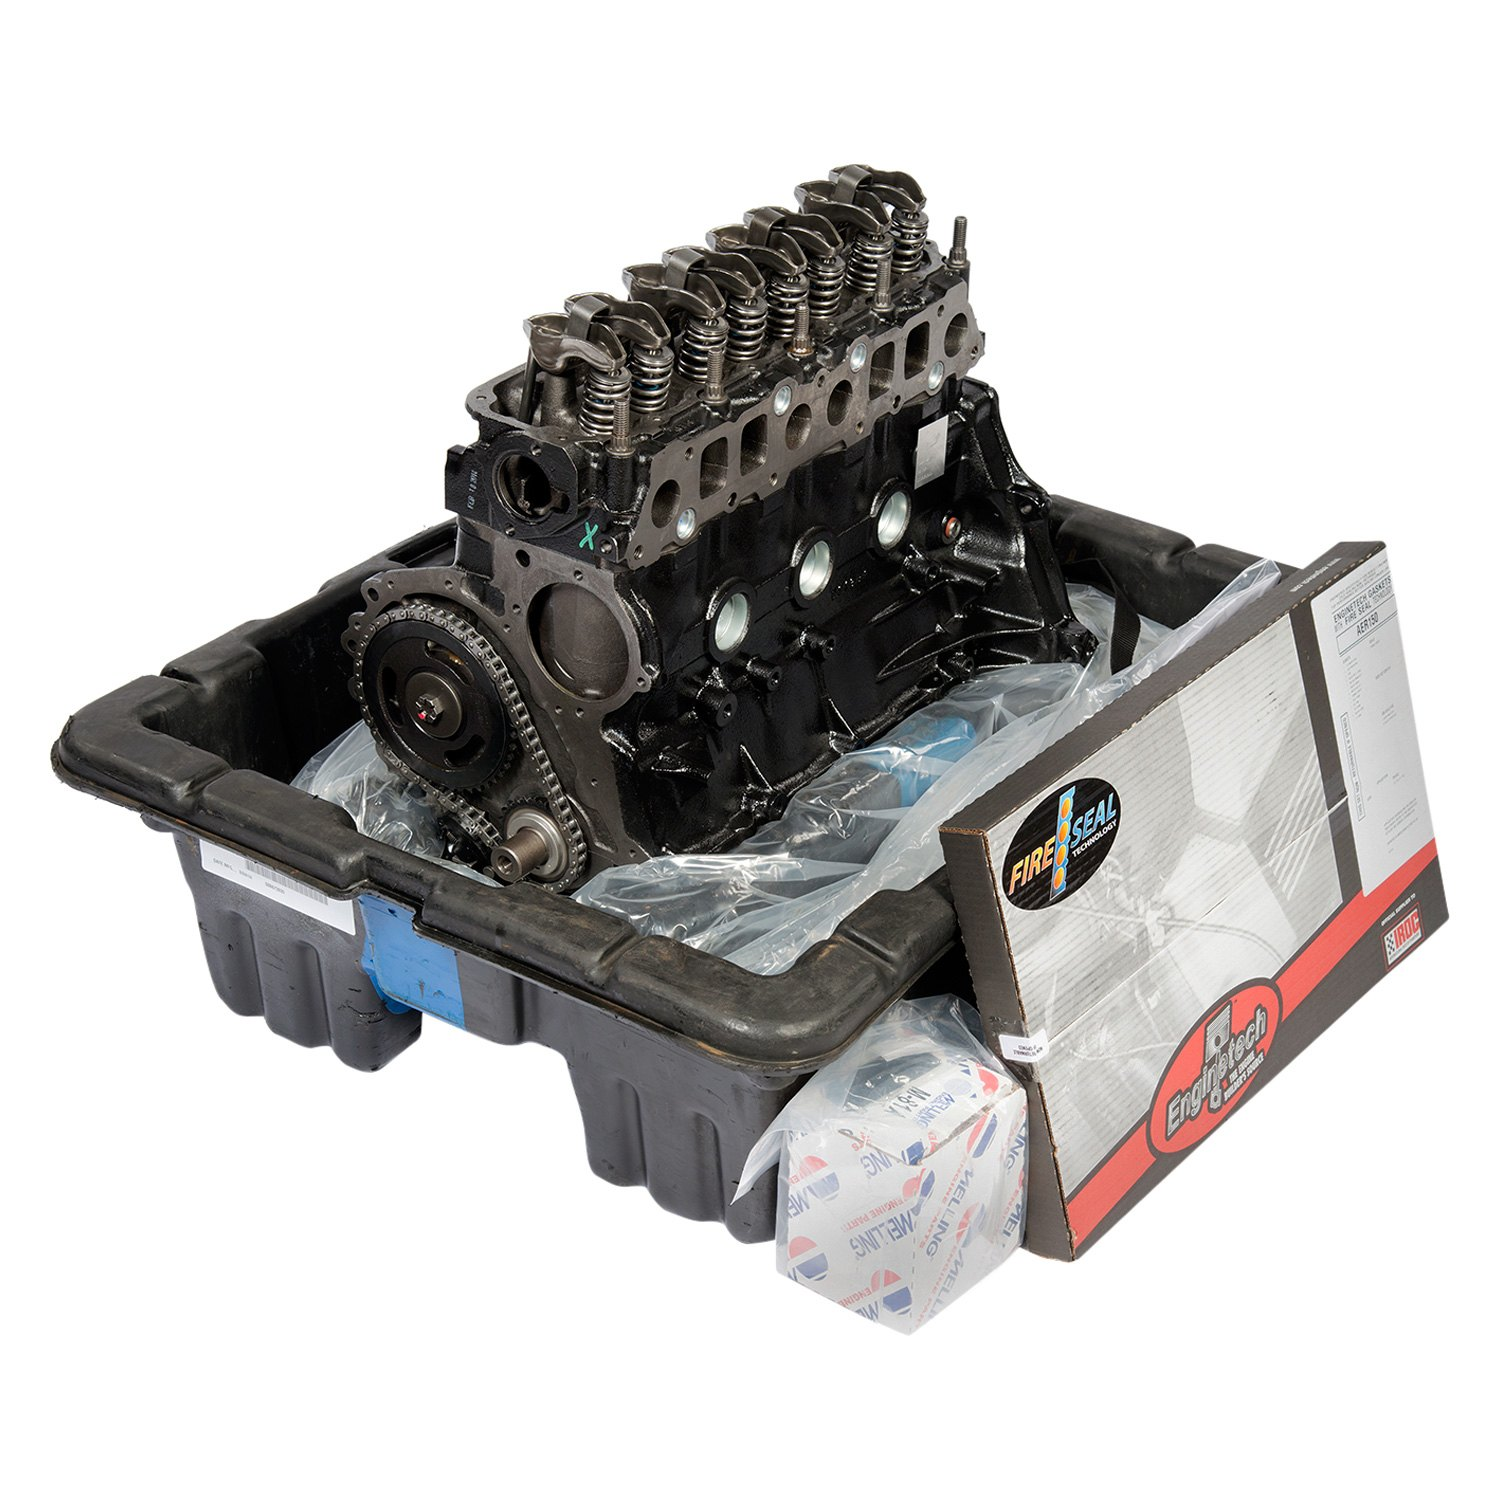 Dodge Dakota 2000 Remanufactured Complete: For Dodge Dakota 97-02 Dahmer Powertrain Remanufactured